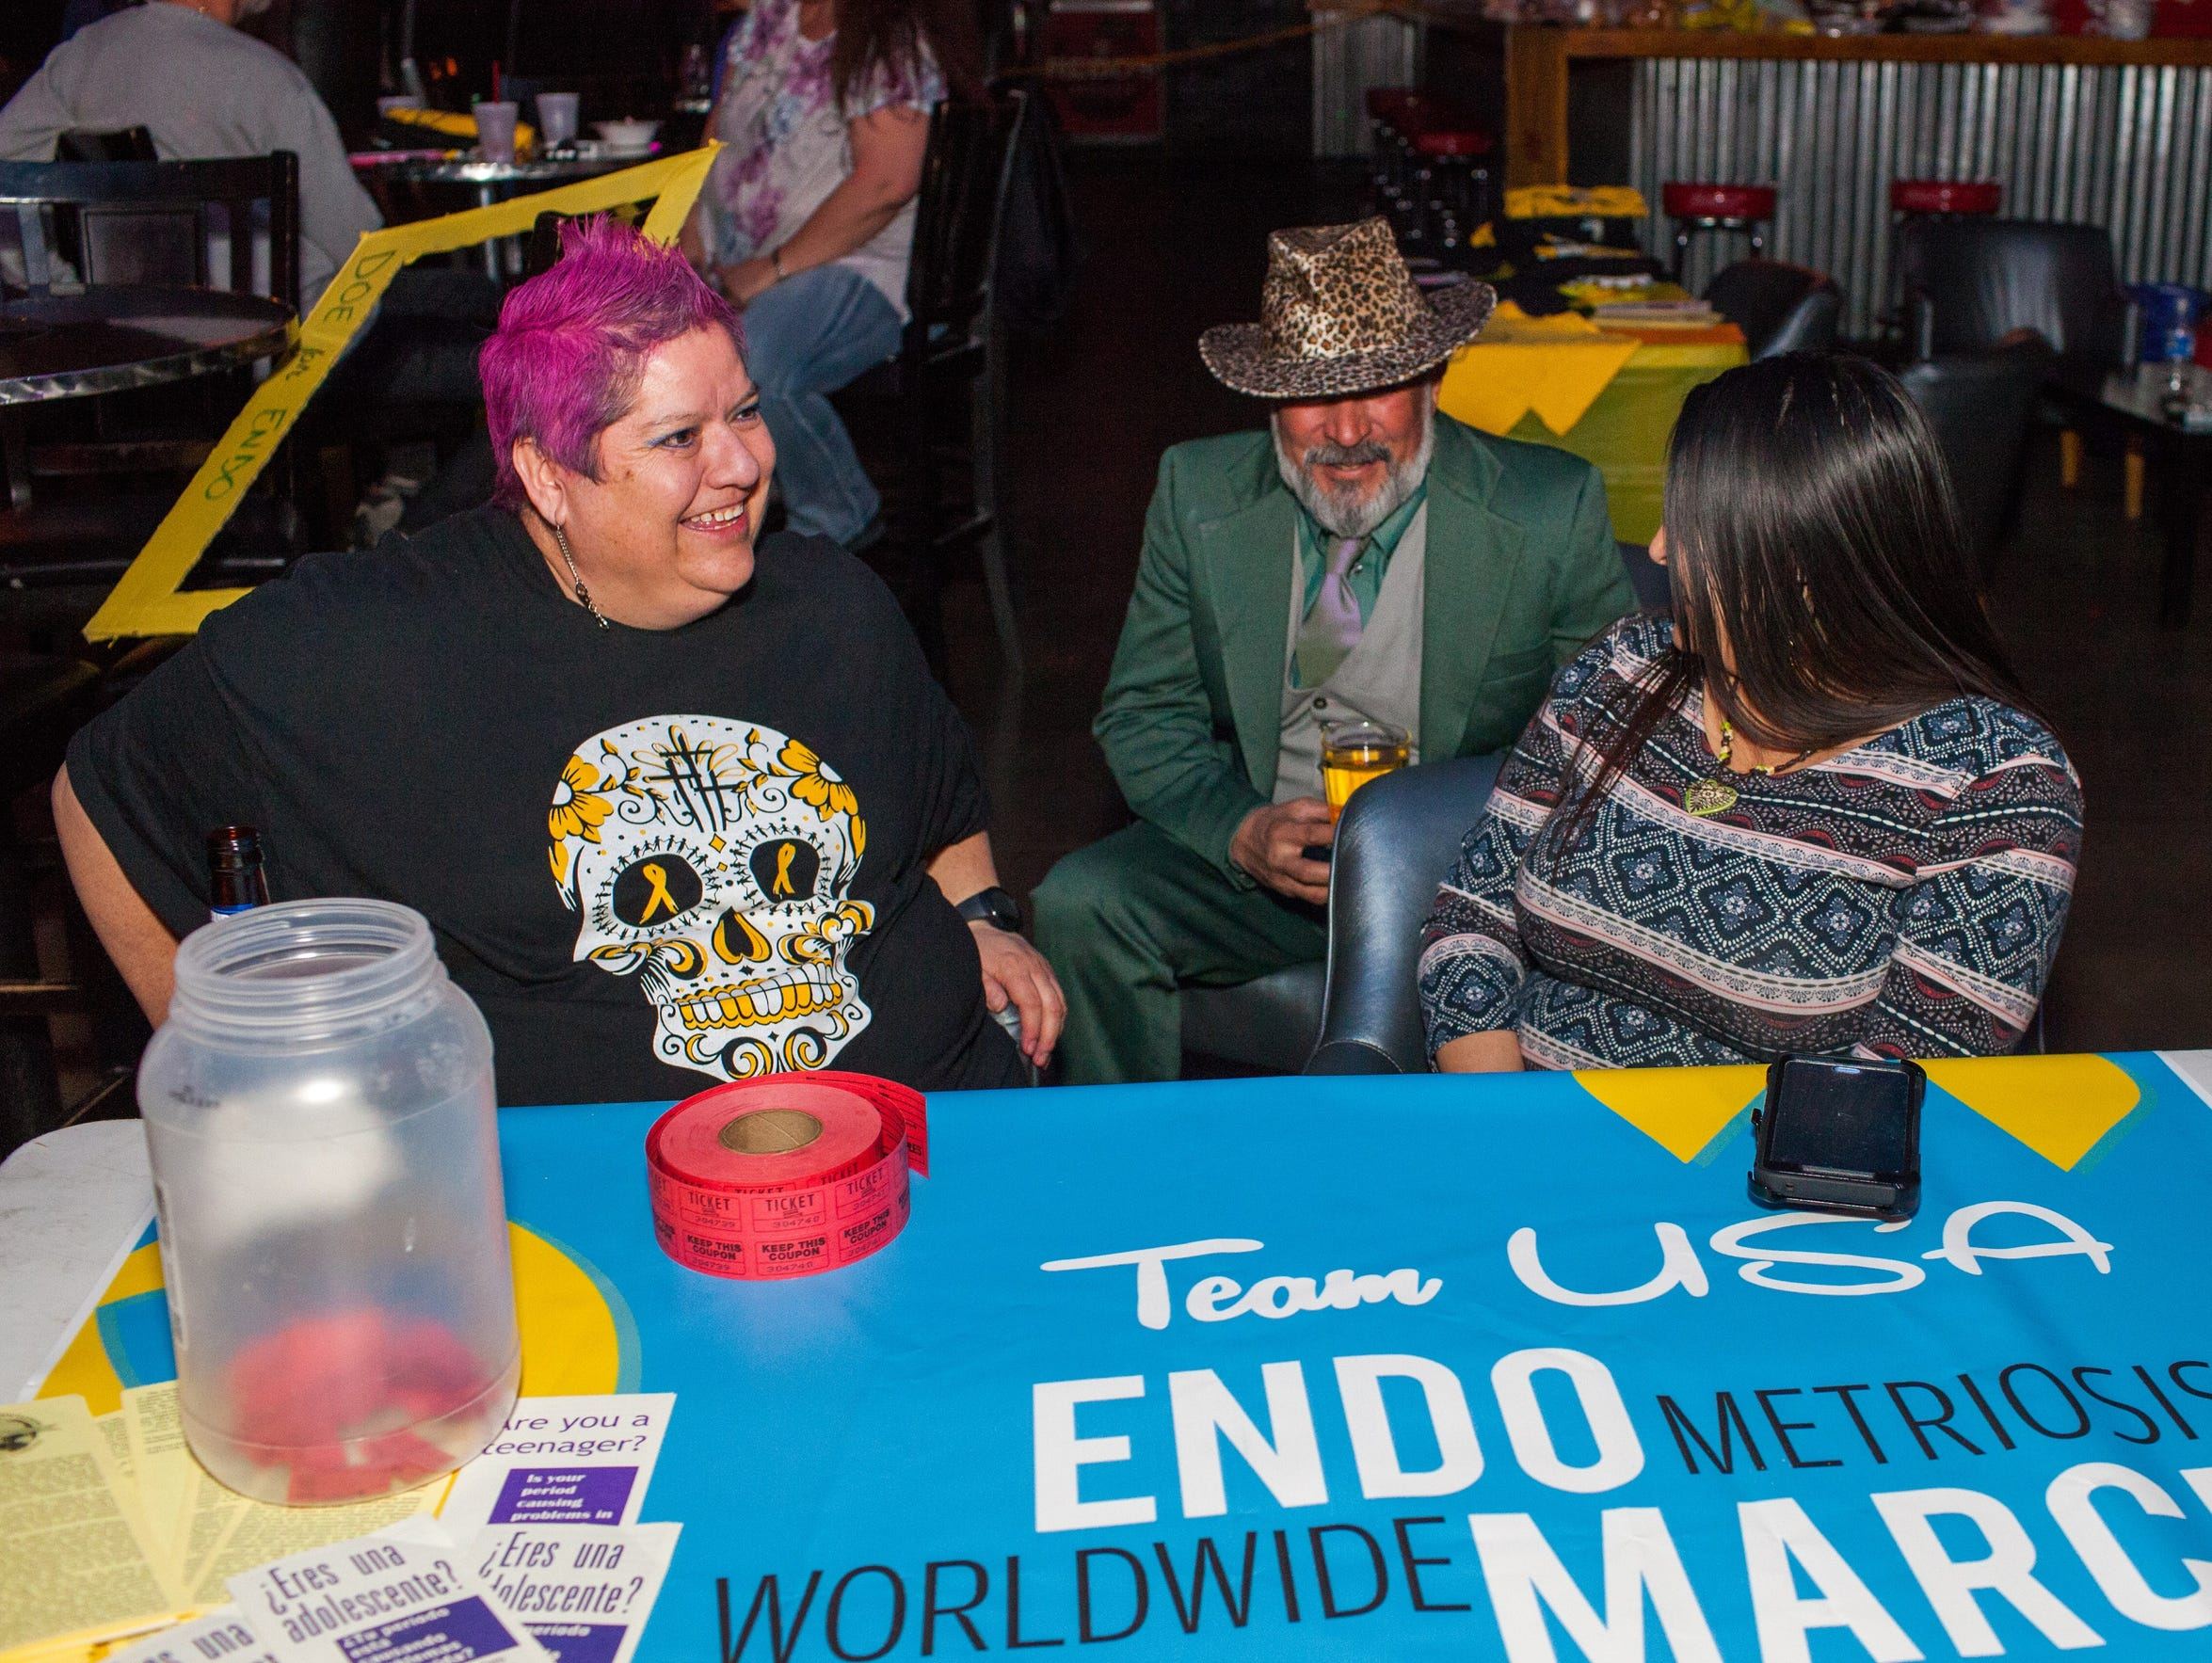 Dolores Gallegos, who was diagnosed with endometriosis 28 years ago, raises funds at The Warehouse Bar so she can attend the Worldwide Endometriosis March in Washington, D.C.